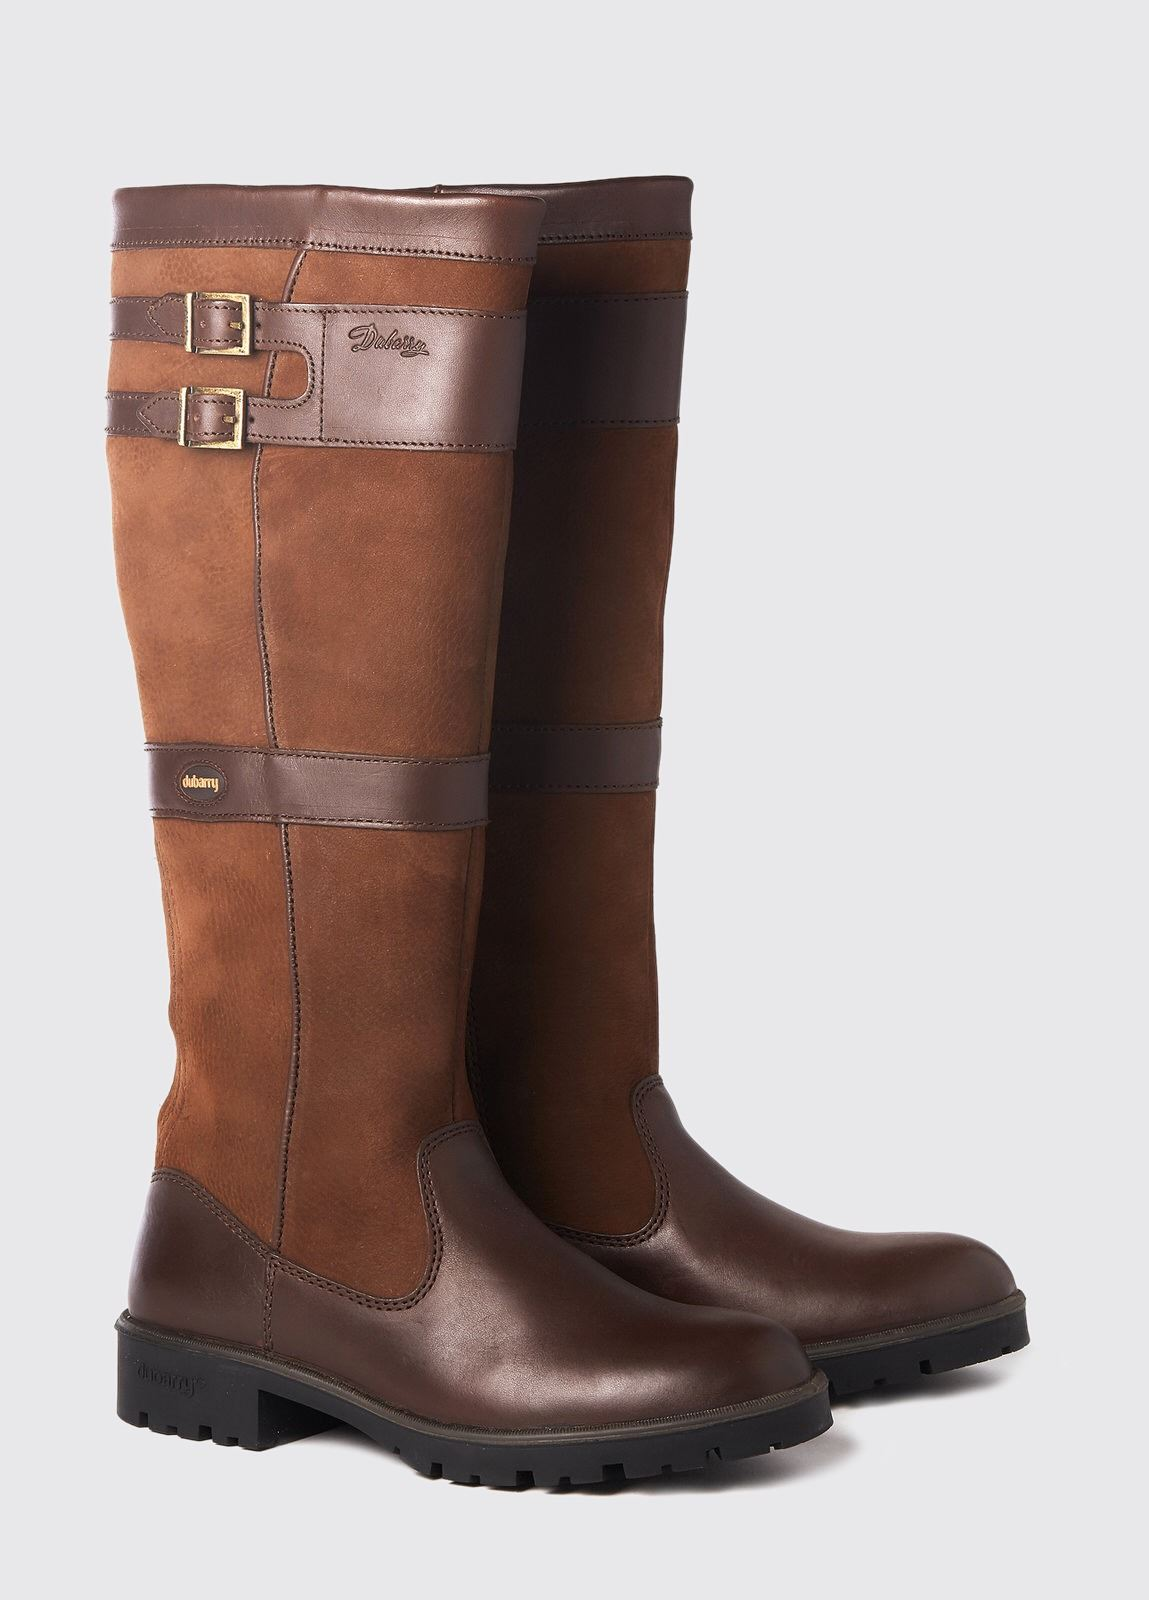 DUBARRY OF IRELAND Ladies Custom Classic Shoot Coat and Country Boots